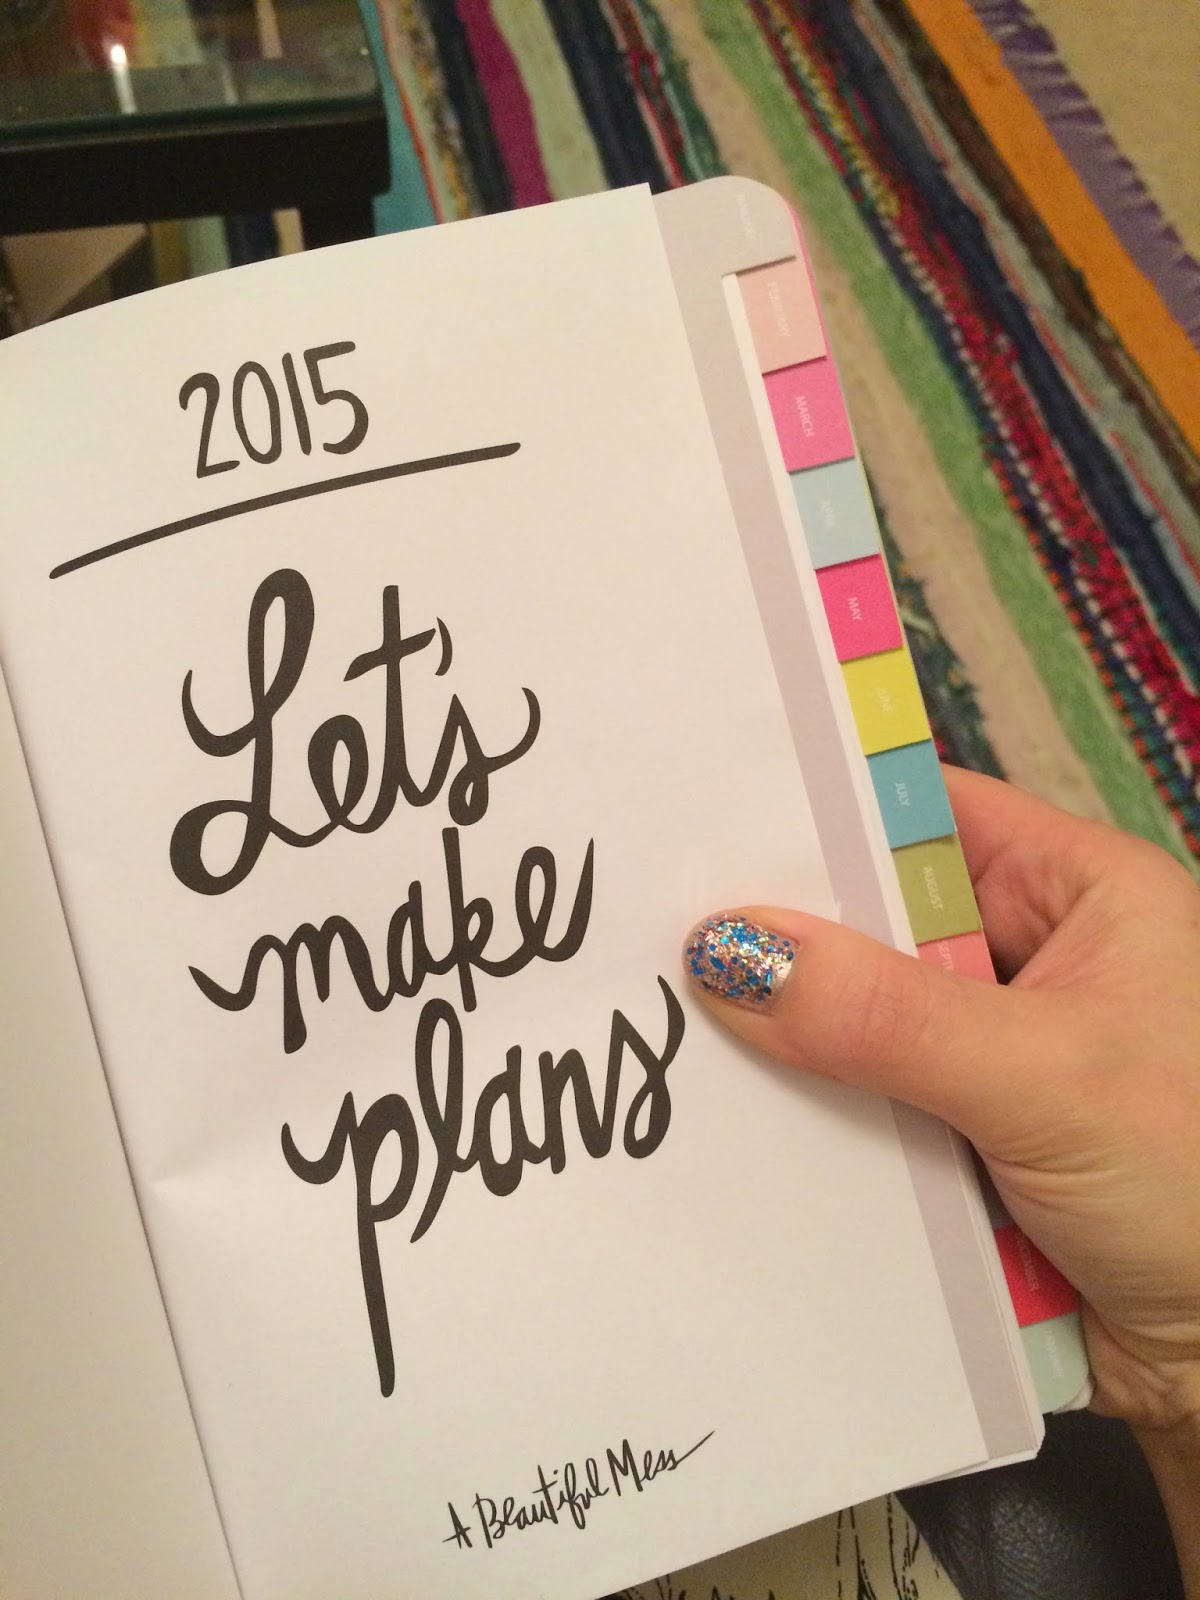 2015 Goal updates: How did I do in January?